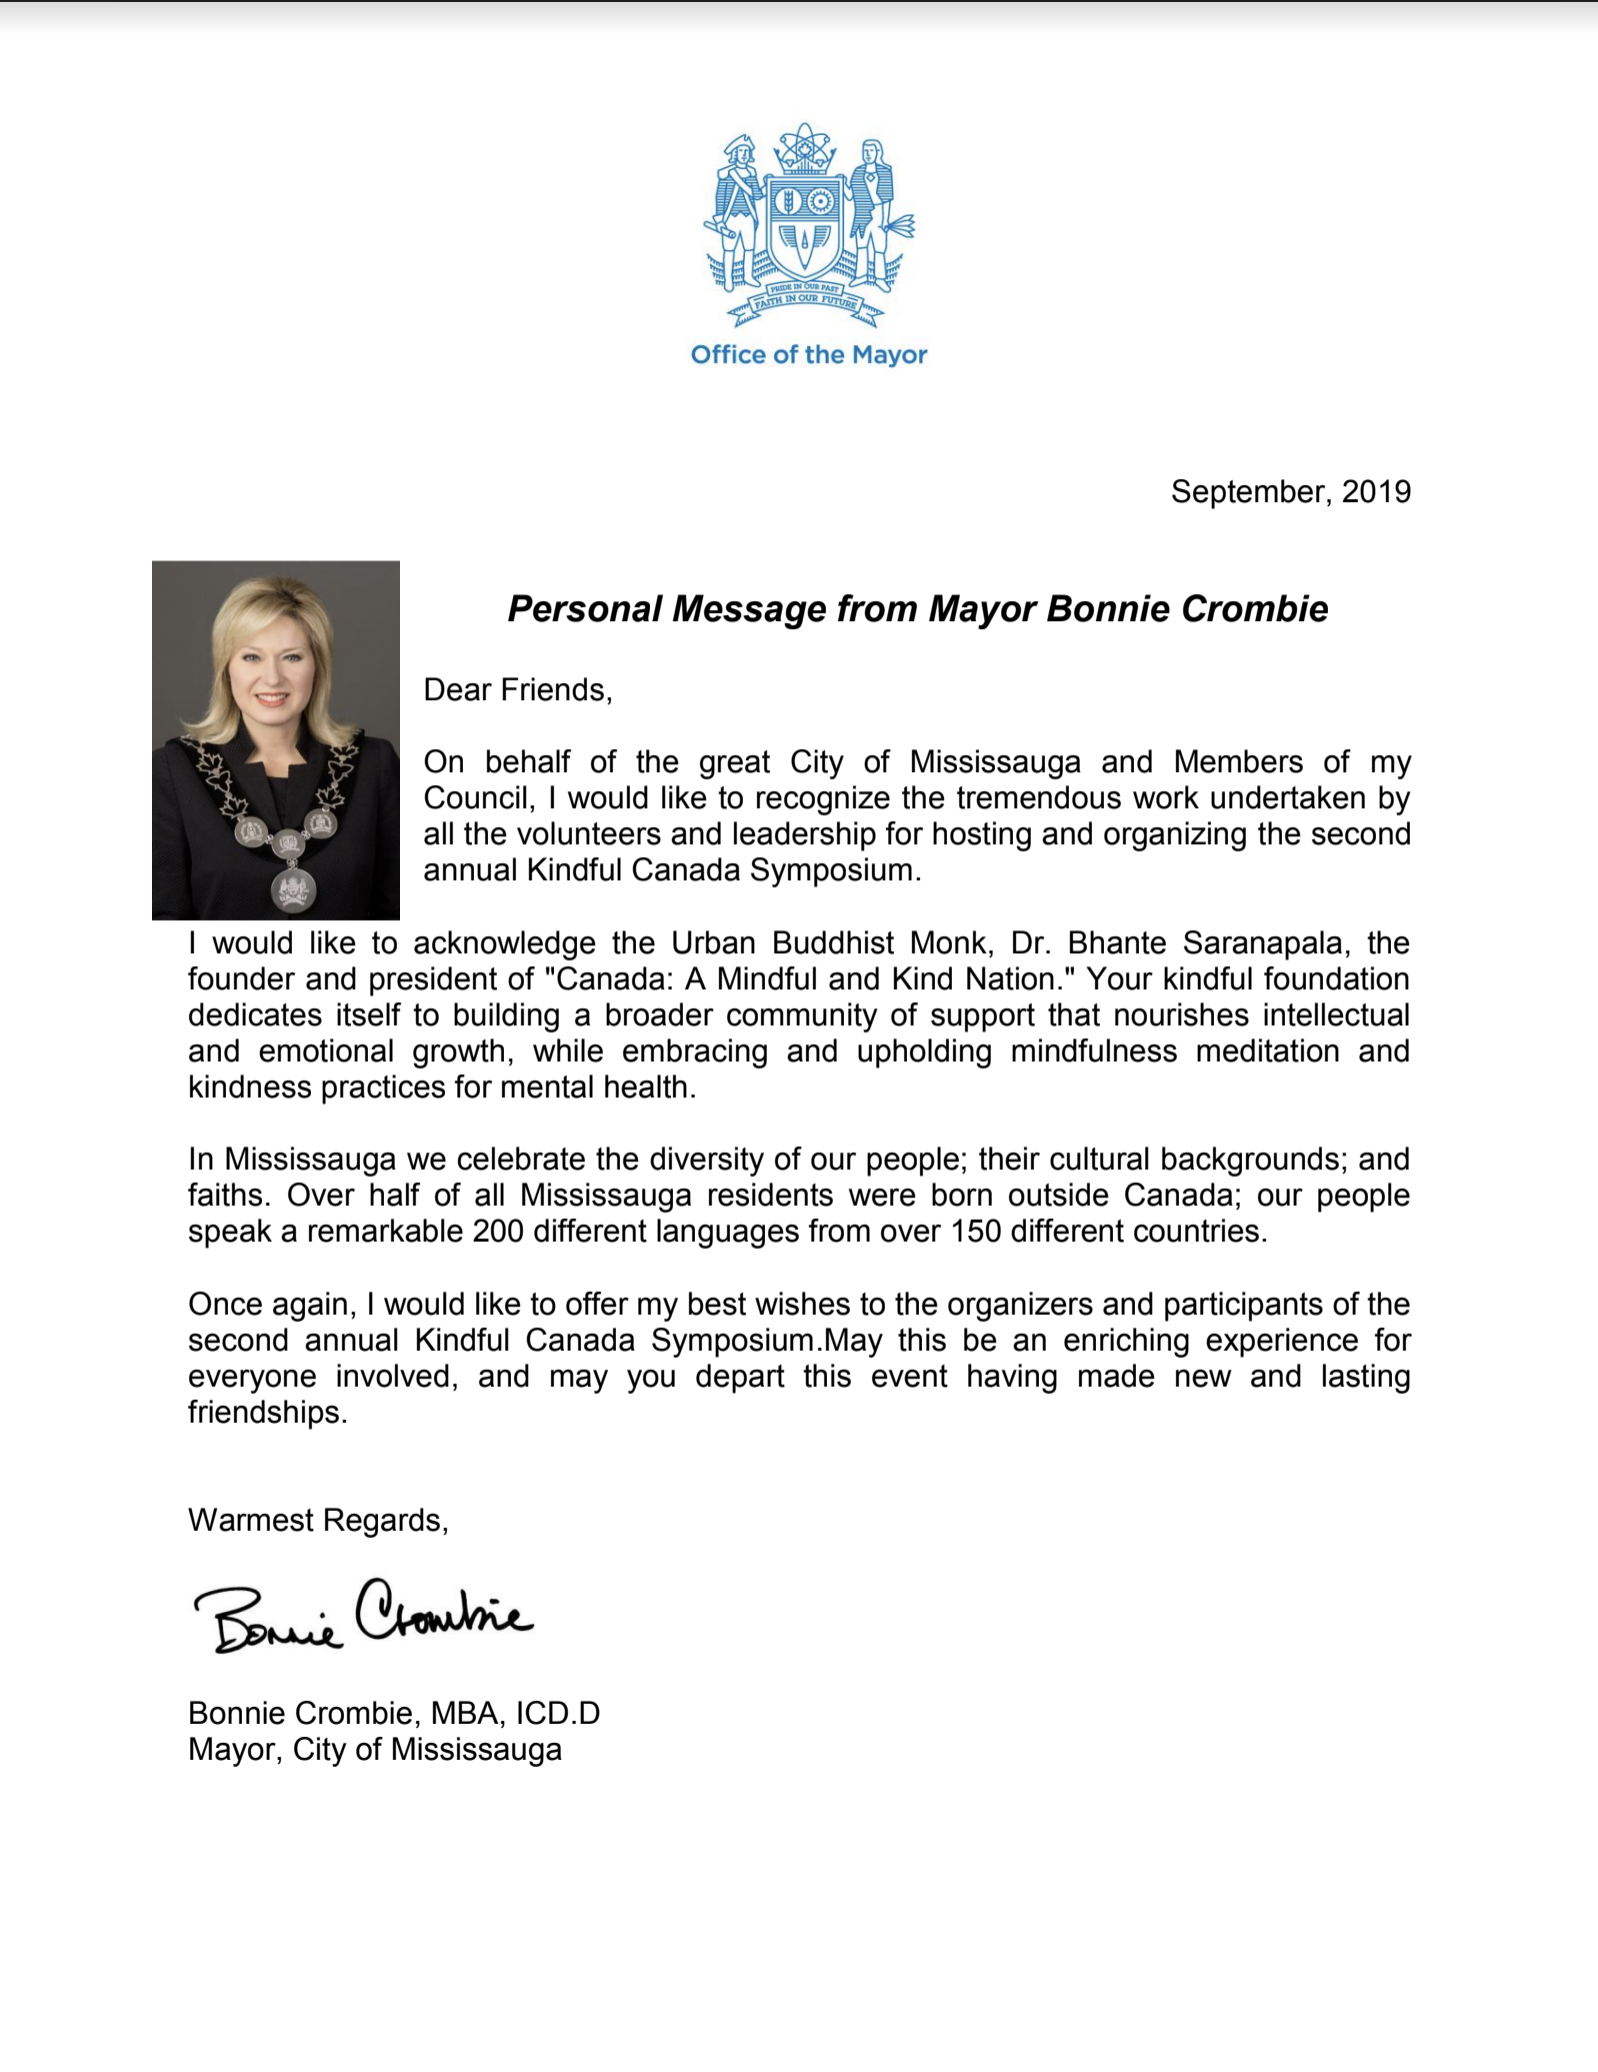 Special Greeting Message from the Mayor Bonnie Crombie